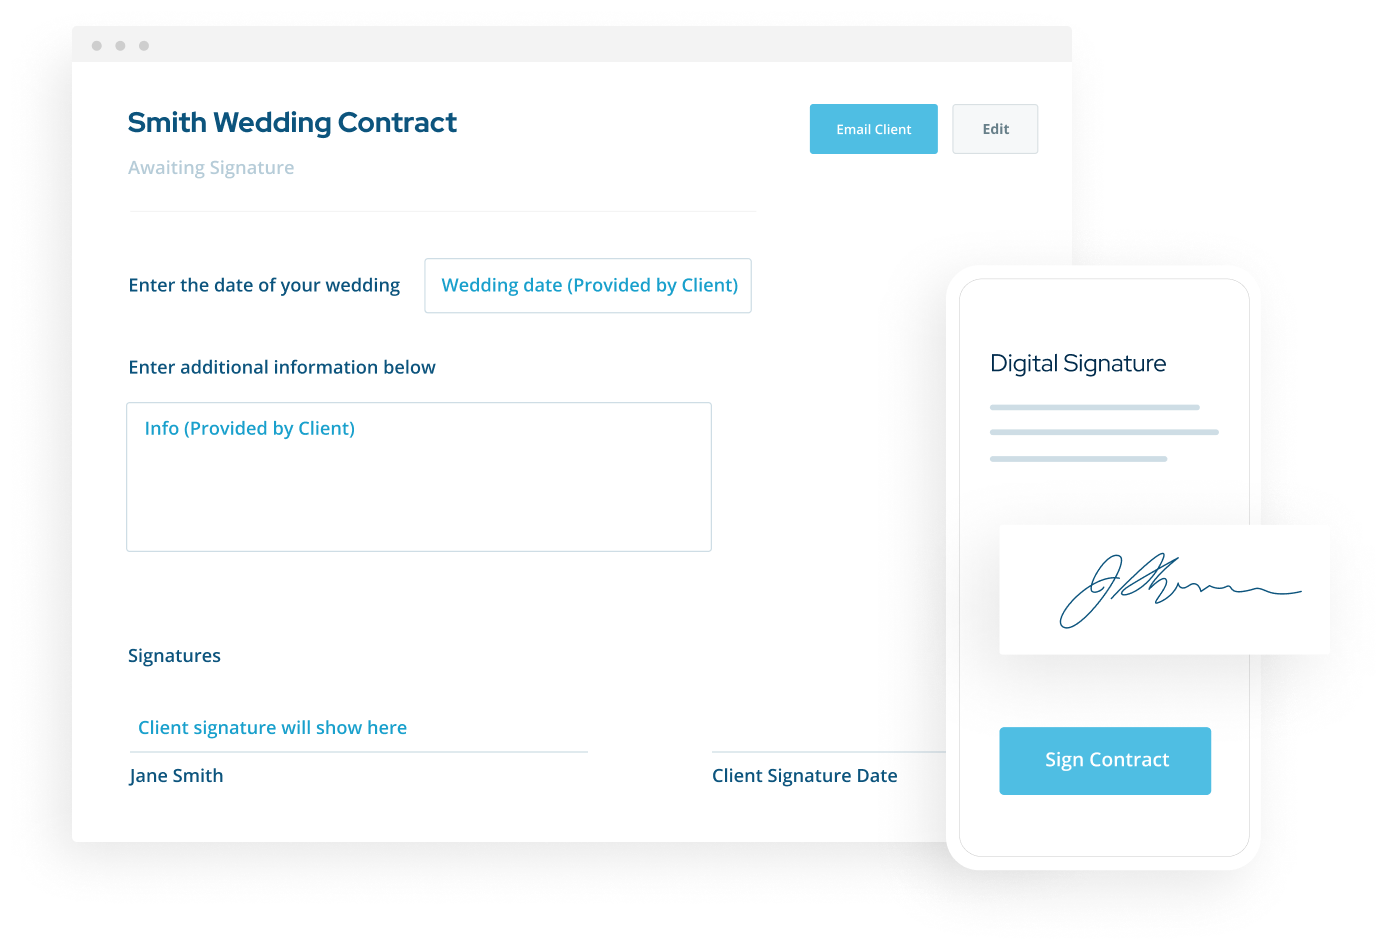 ShootProof's fillable contracts interface with a digital signature screen on mobile